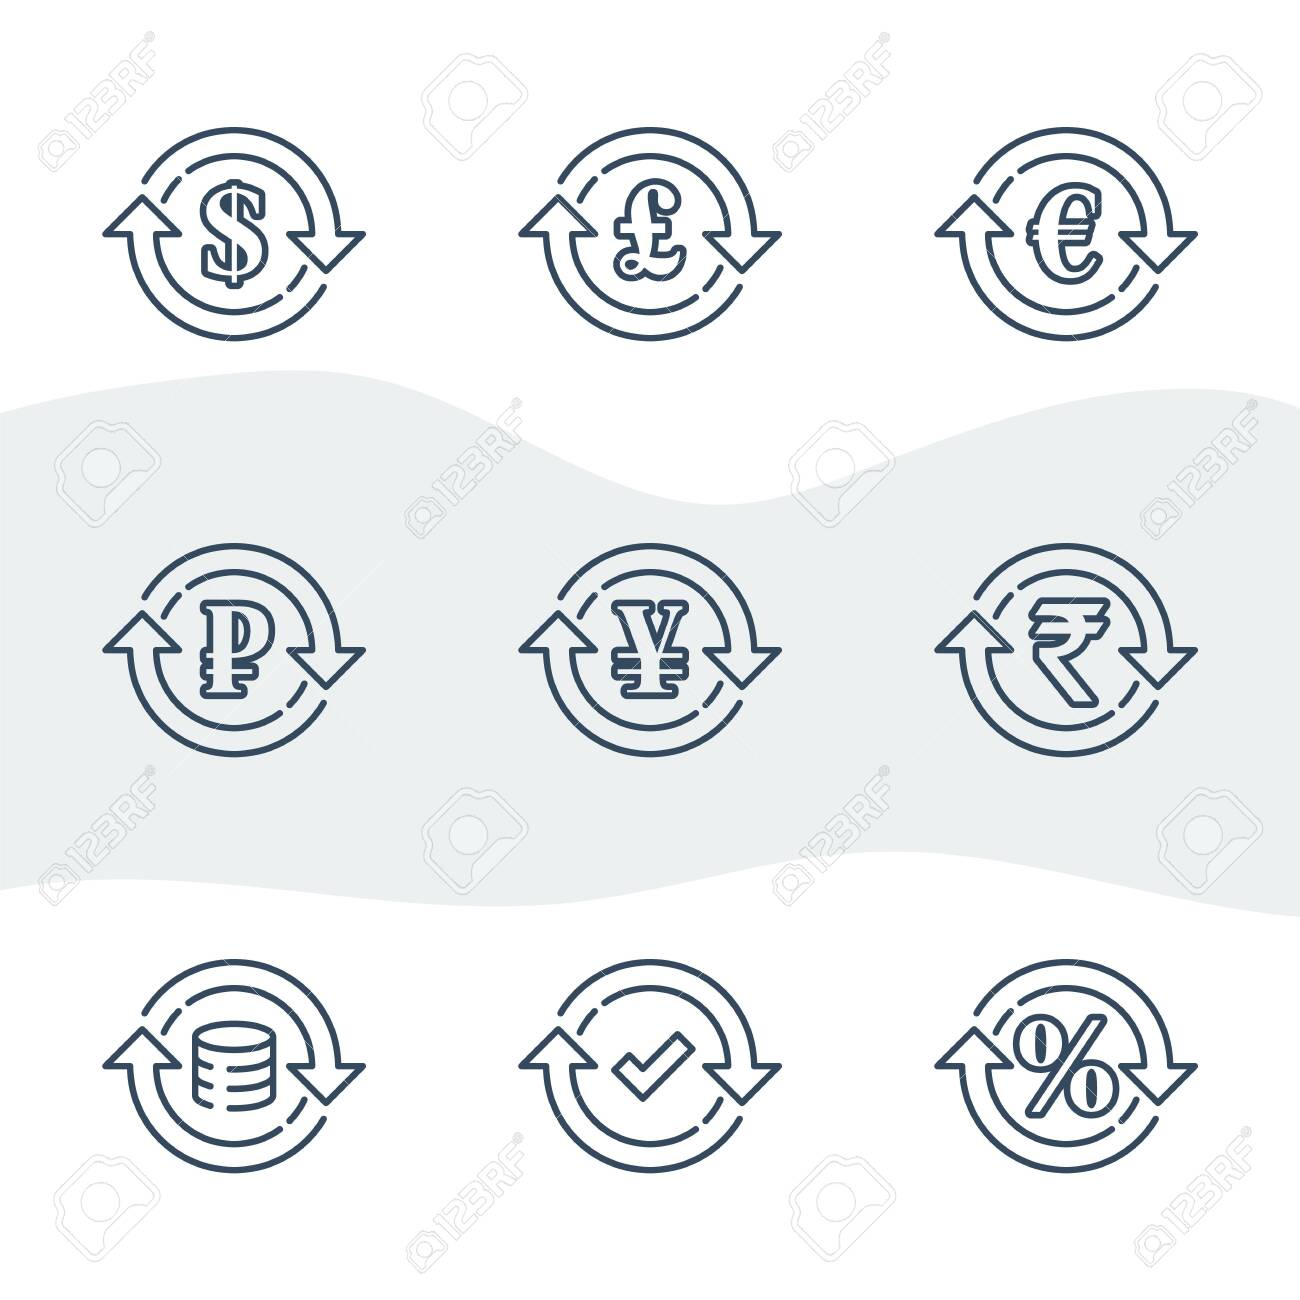 Currency exchange, financial services, pound and euro, dollar sign in circle arrow, ruble and rupee symbol, interest rate, debt refinance, return money, vector line icon set - 144943750